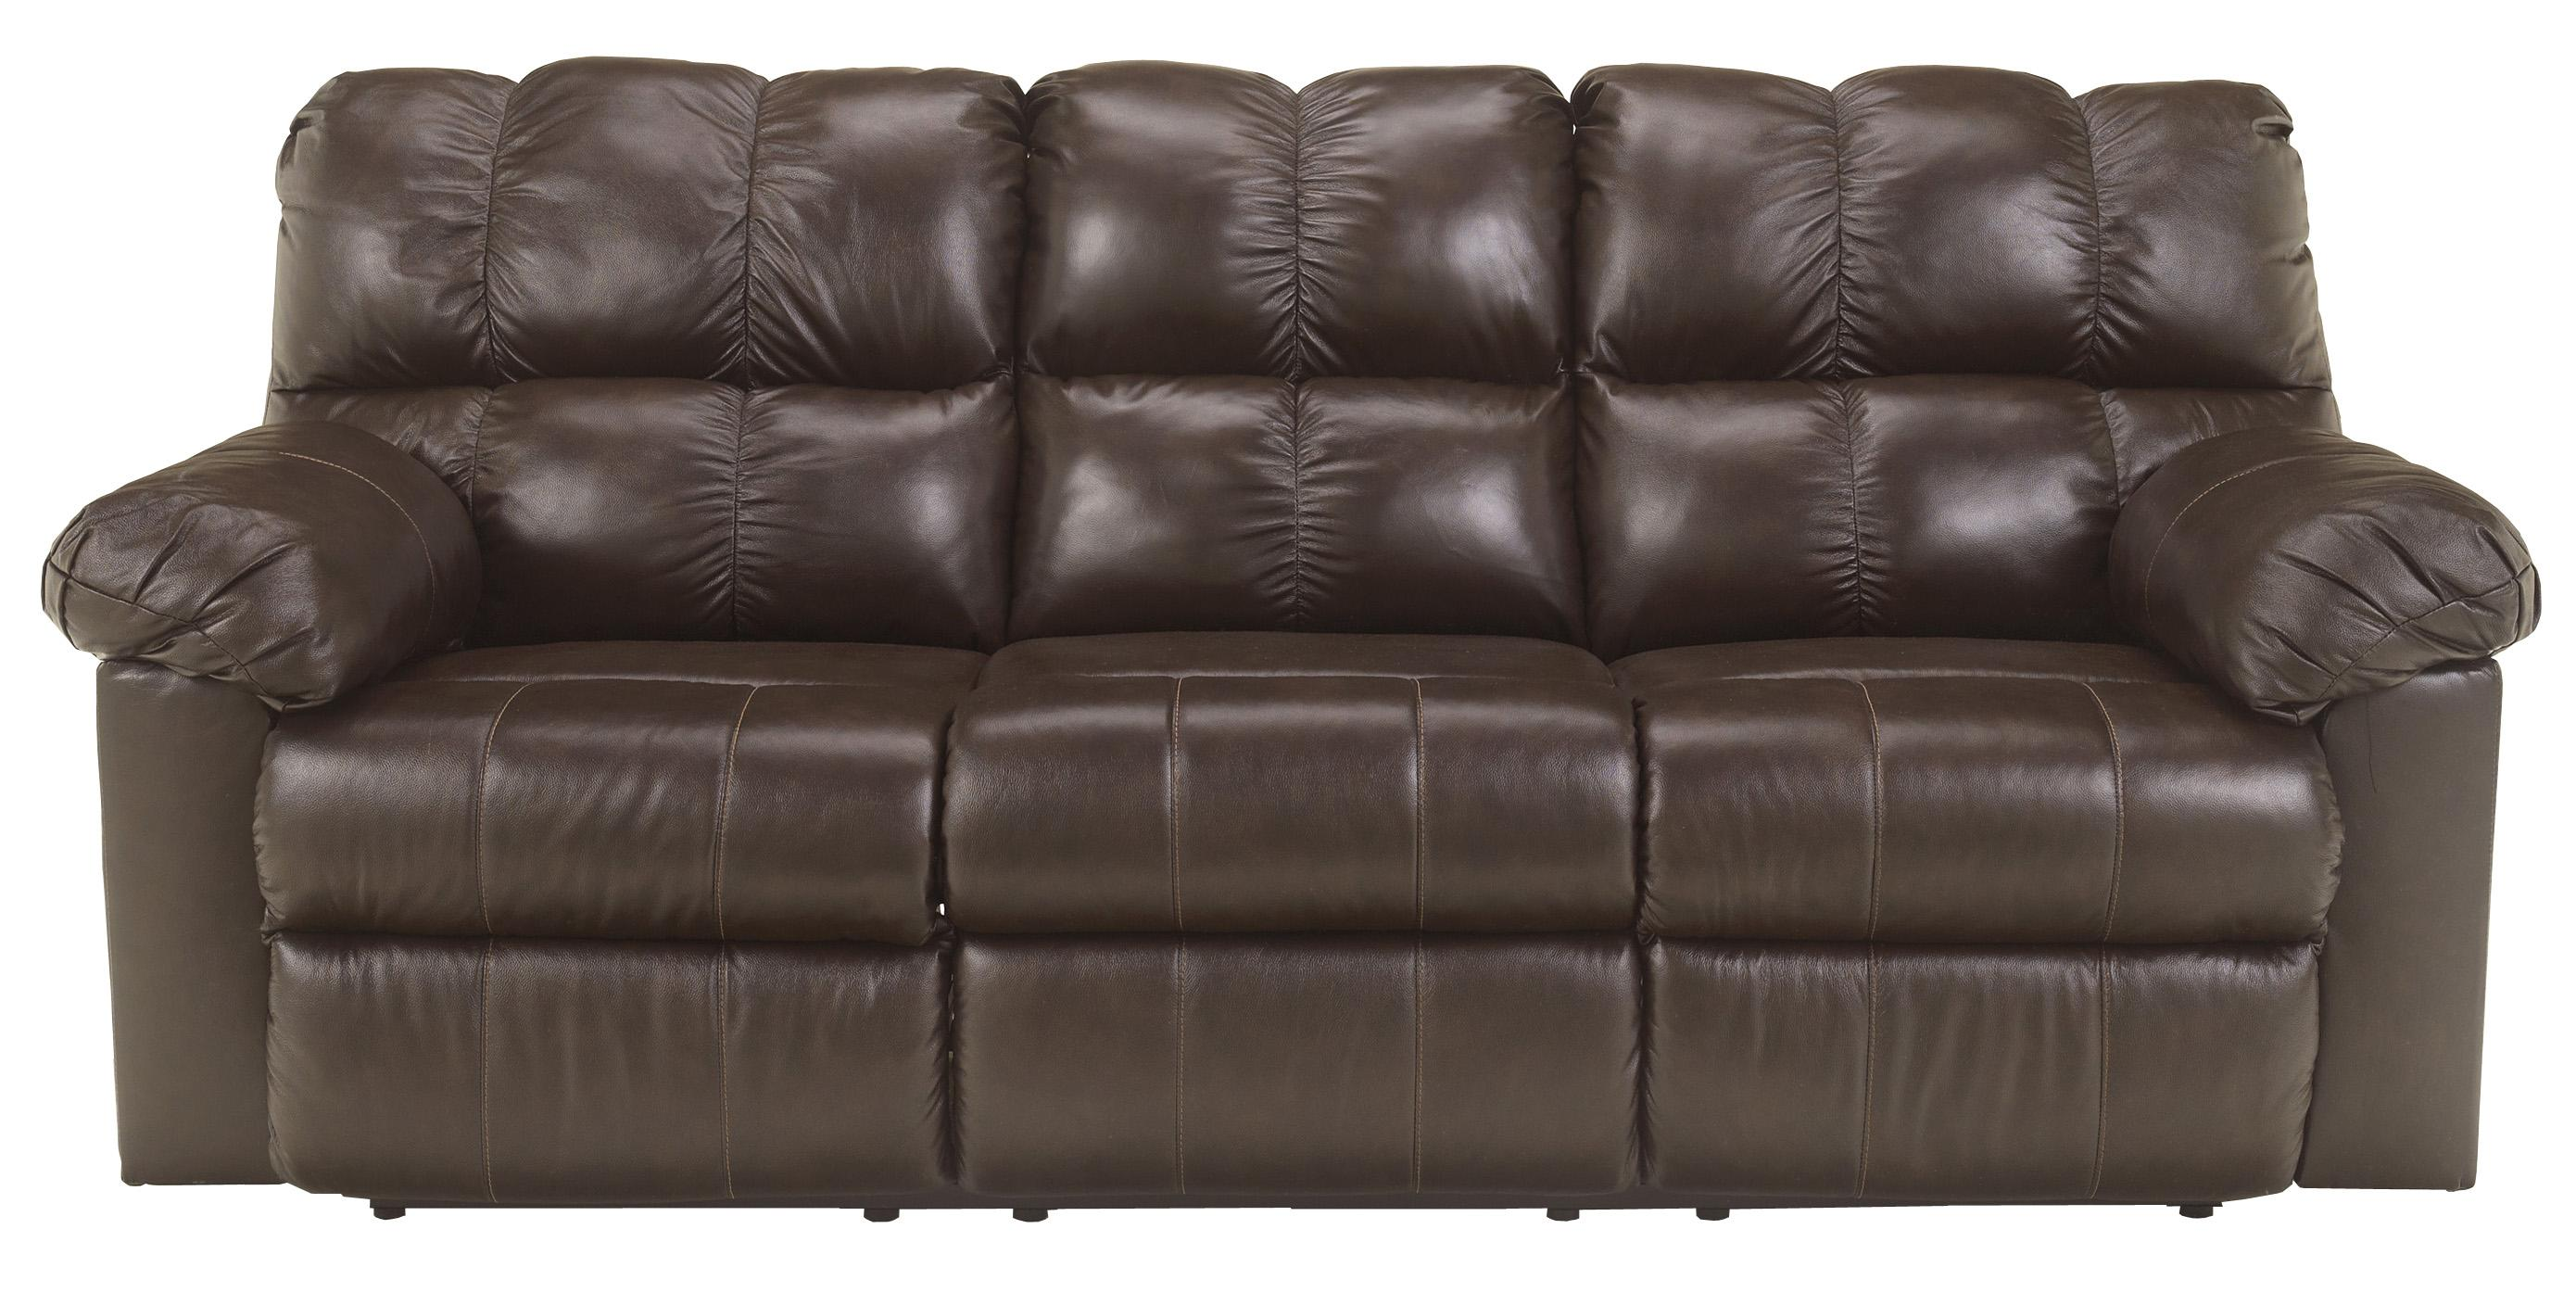 Signature Design by Ashley Kennard - Chocolate Reclining Sofa - Item Number: 2900188